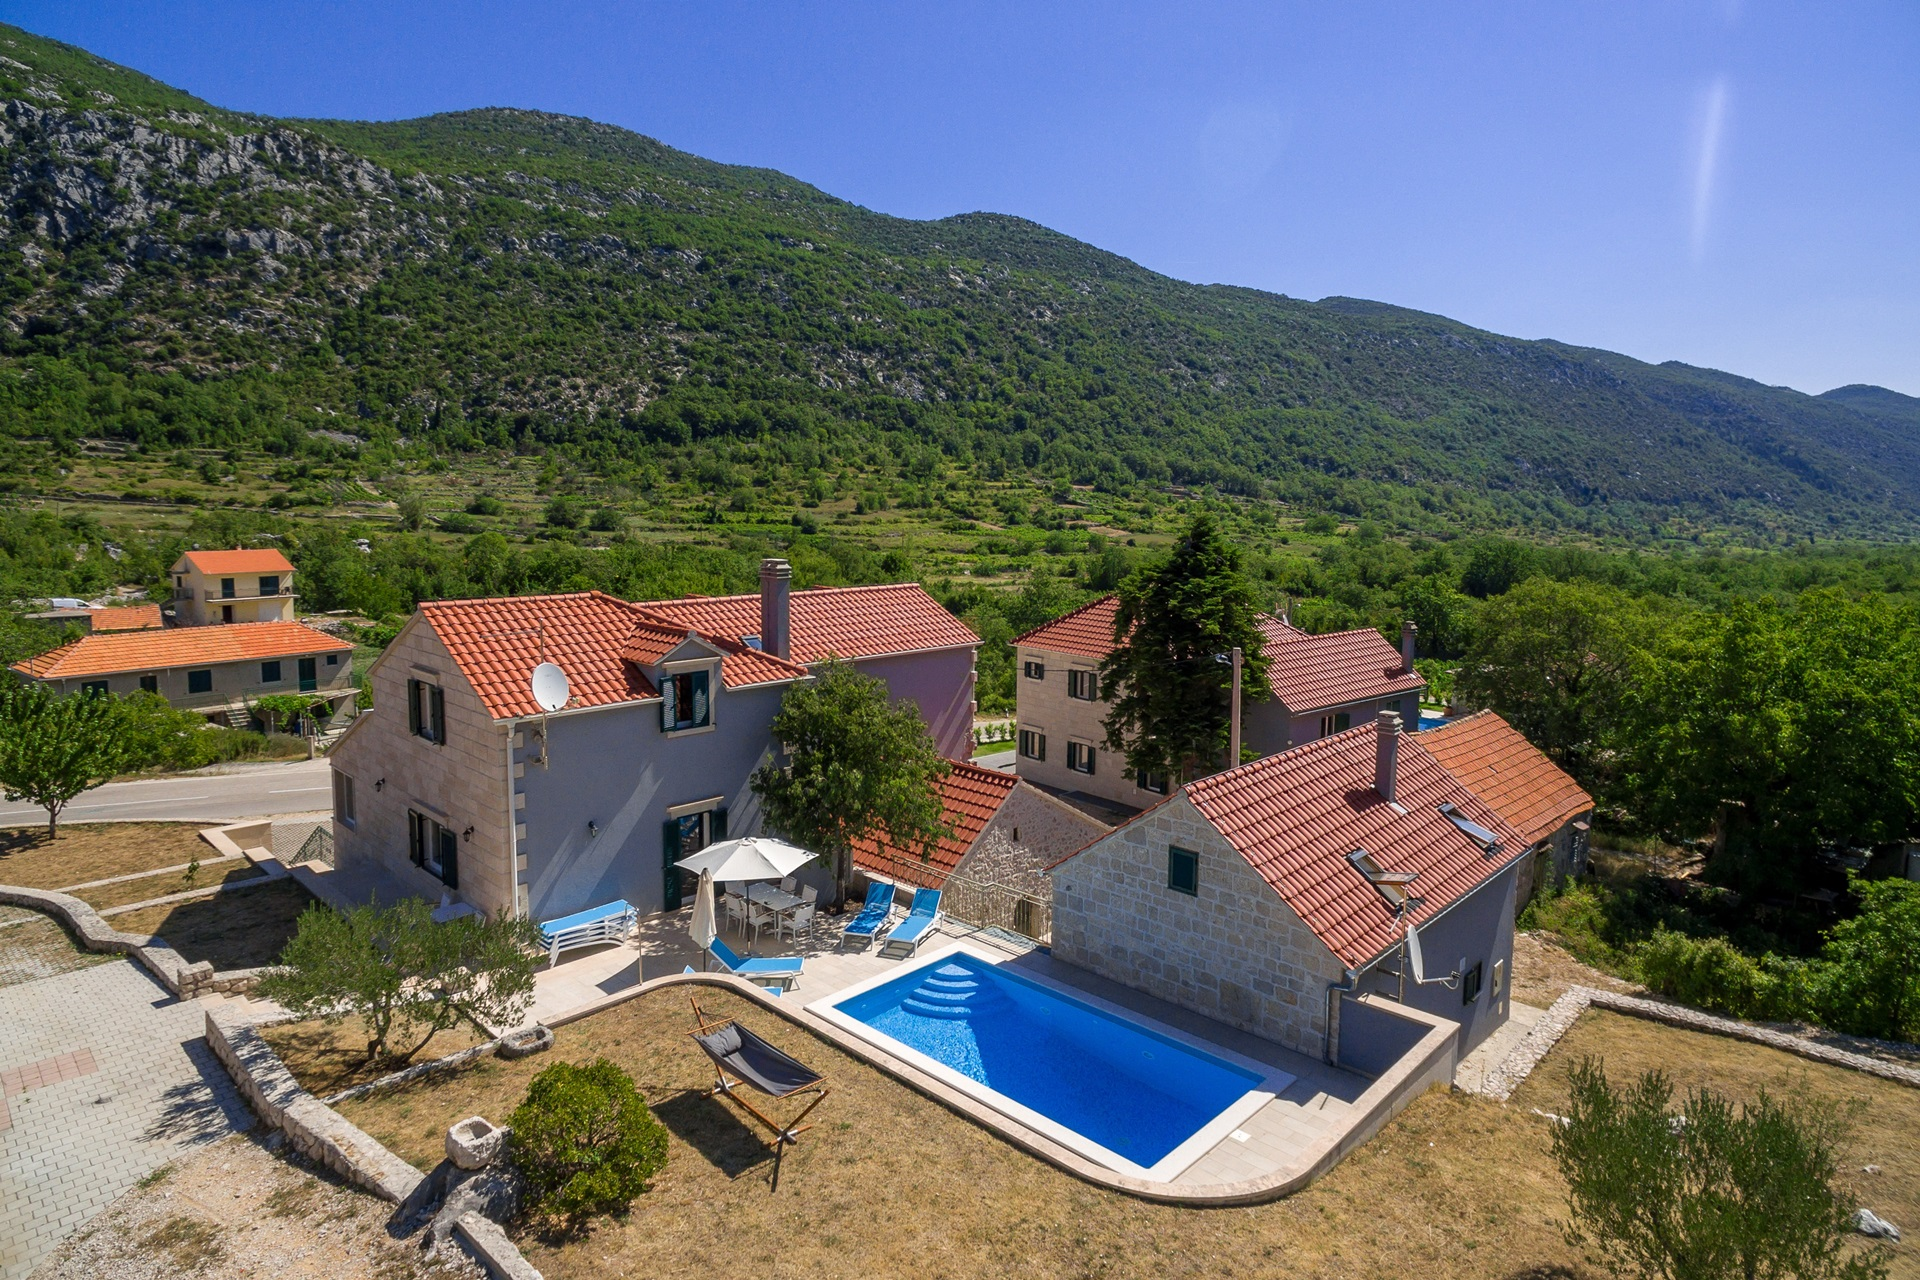 Villa Roglic property with the private swimming pool and lounge area for renting